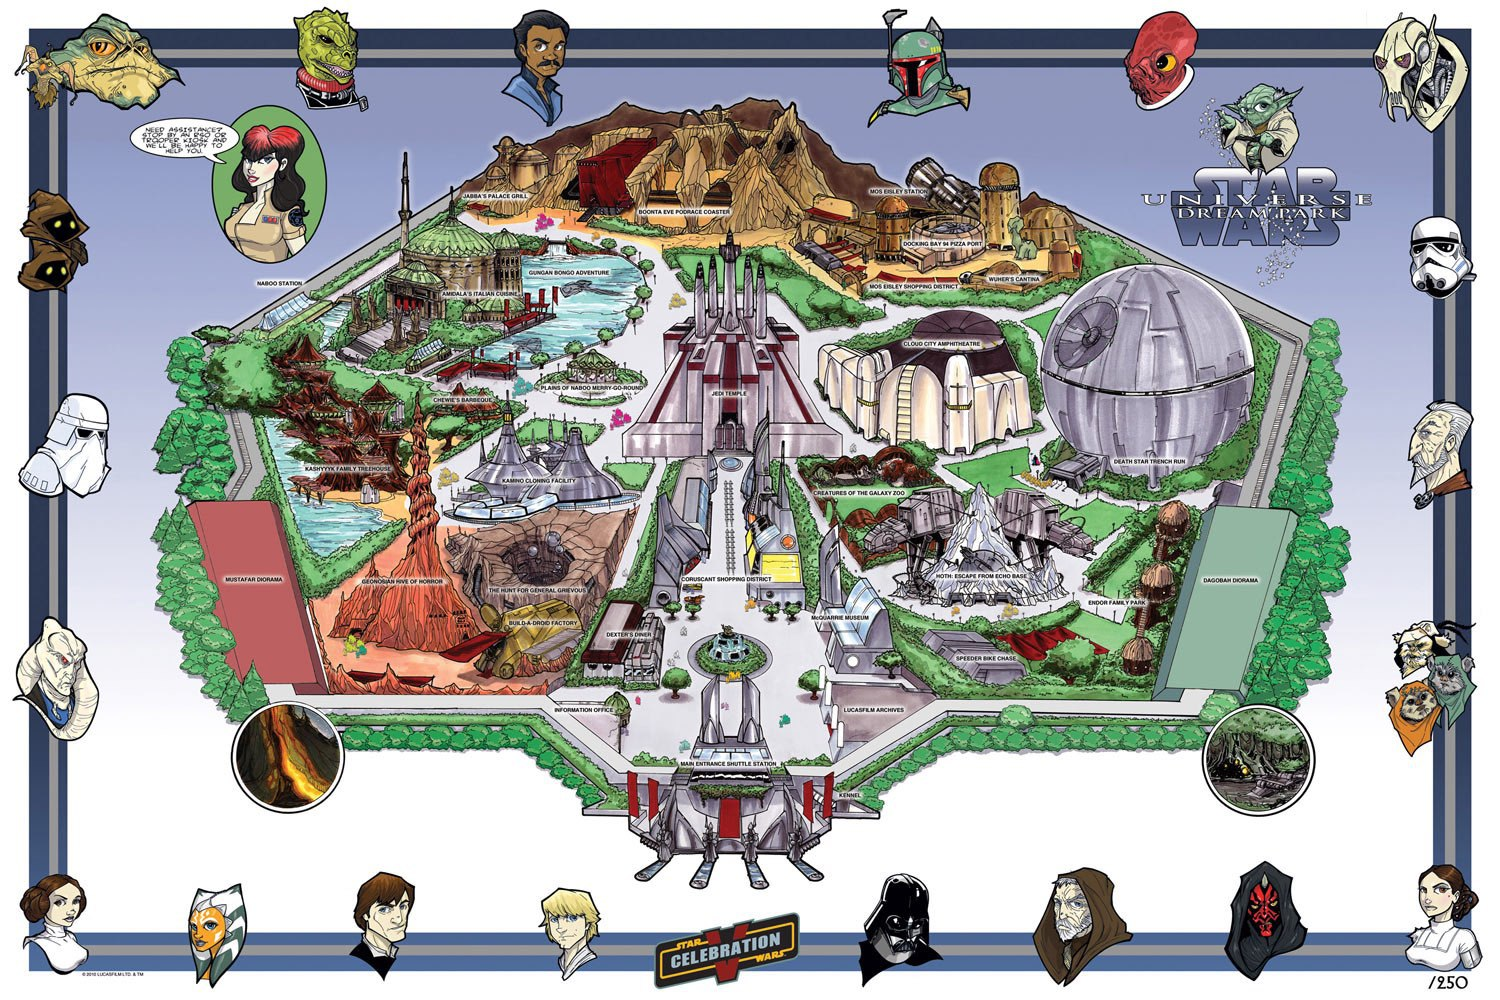 Star Wars Land to Hit Disney Parks - a Whole New Planet in the Star Wars Universe